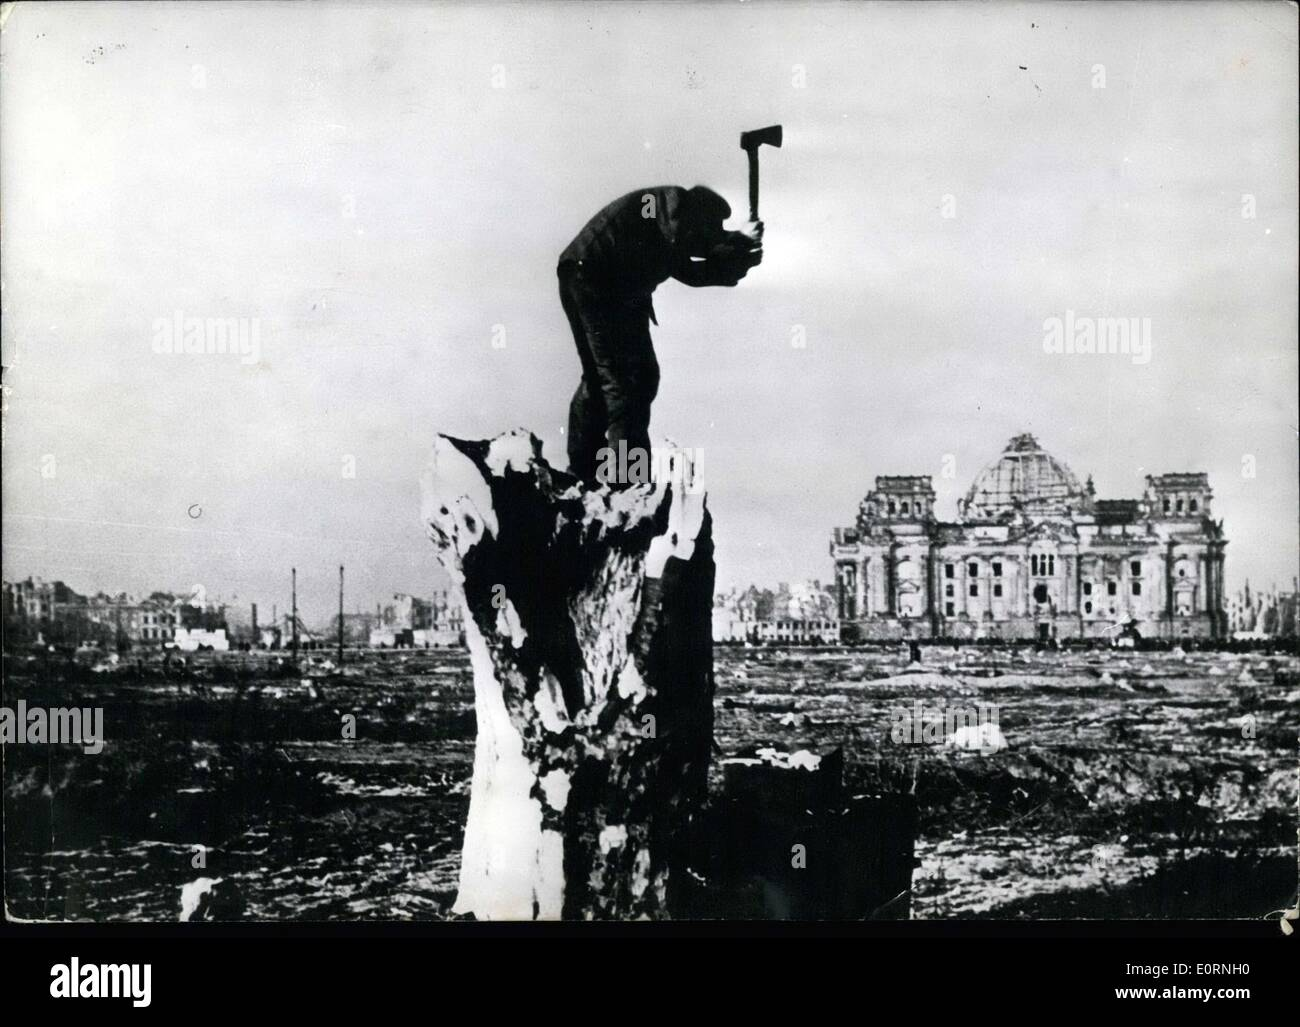 Mar. 09, 1960 - 15th anniversary of the end of the second world war. Berlin 1945: View of the destroyed zoological garden at the Reichstag. - Stock Image